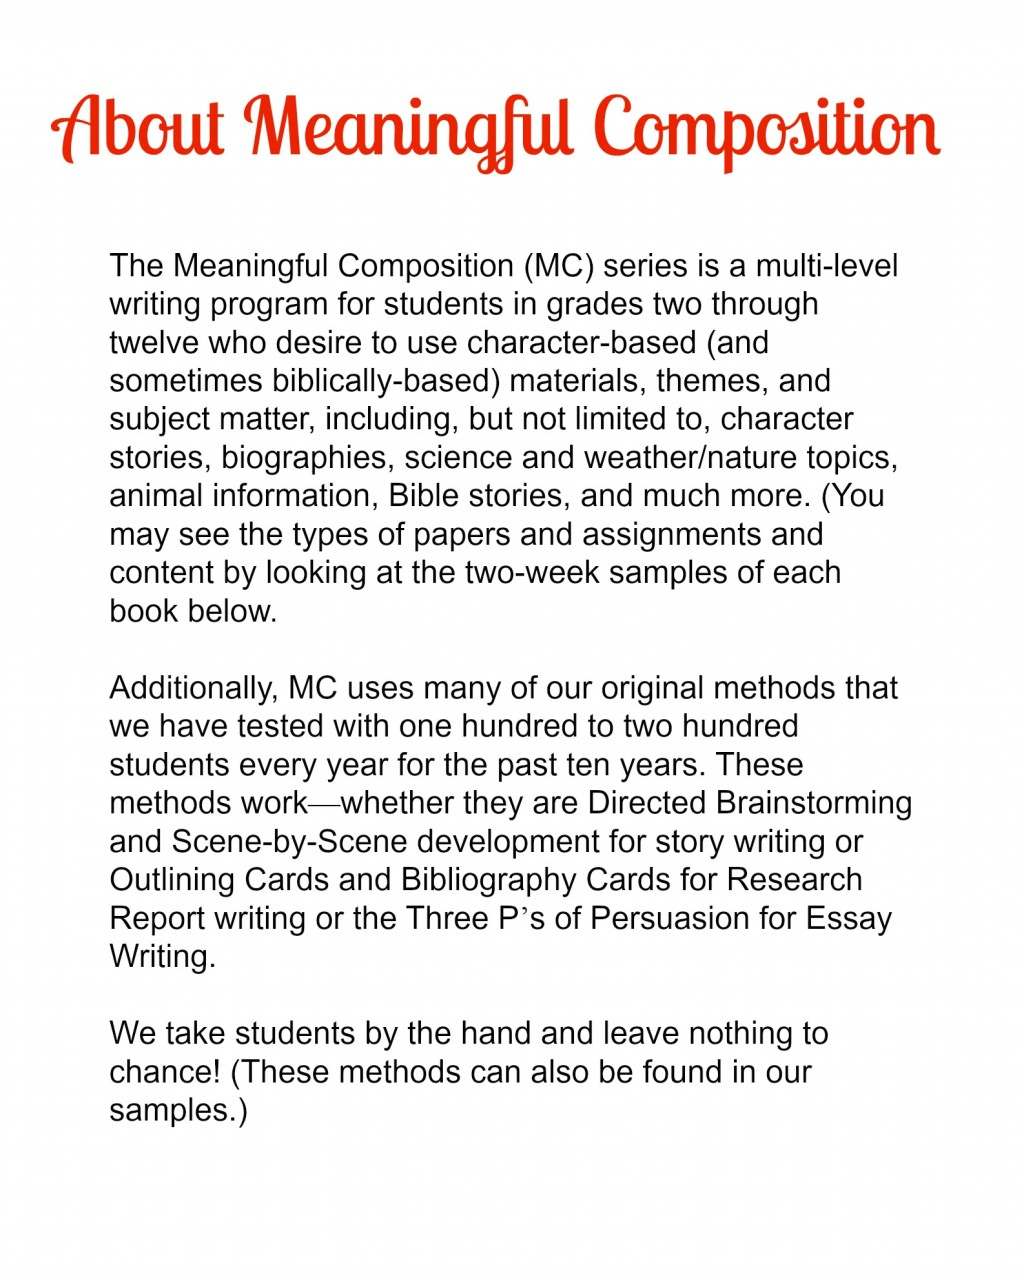 005 Essay Example Expository Examples Of Introductions Creative Writing Course Paragraph Persuasive On Bullying About Meaningful Compos Cyber How To Prevent Five Magnificent Essays Argumentative Pdf Papers Large